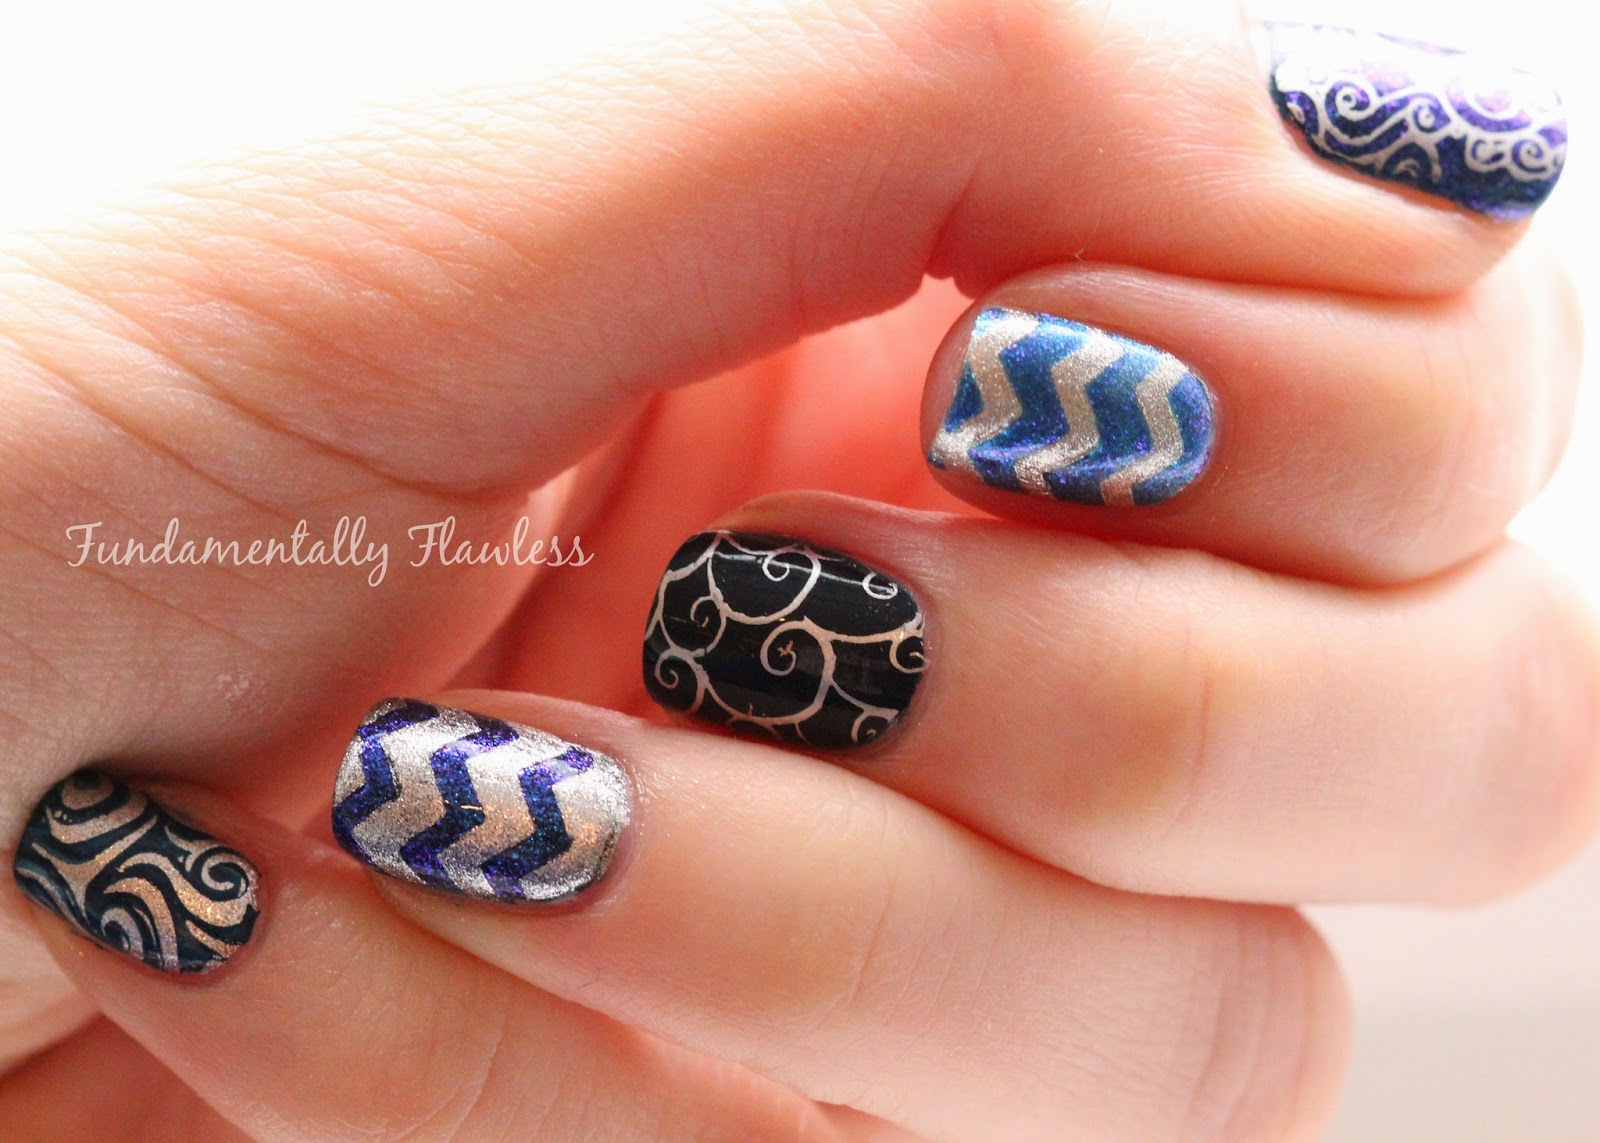 Fundamentally Flawless Navy Blue And Silver Nails With Moyou Sailor